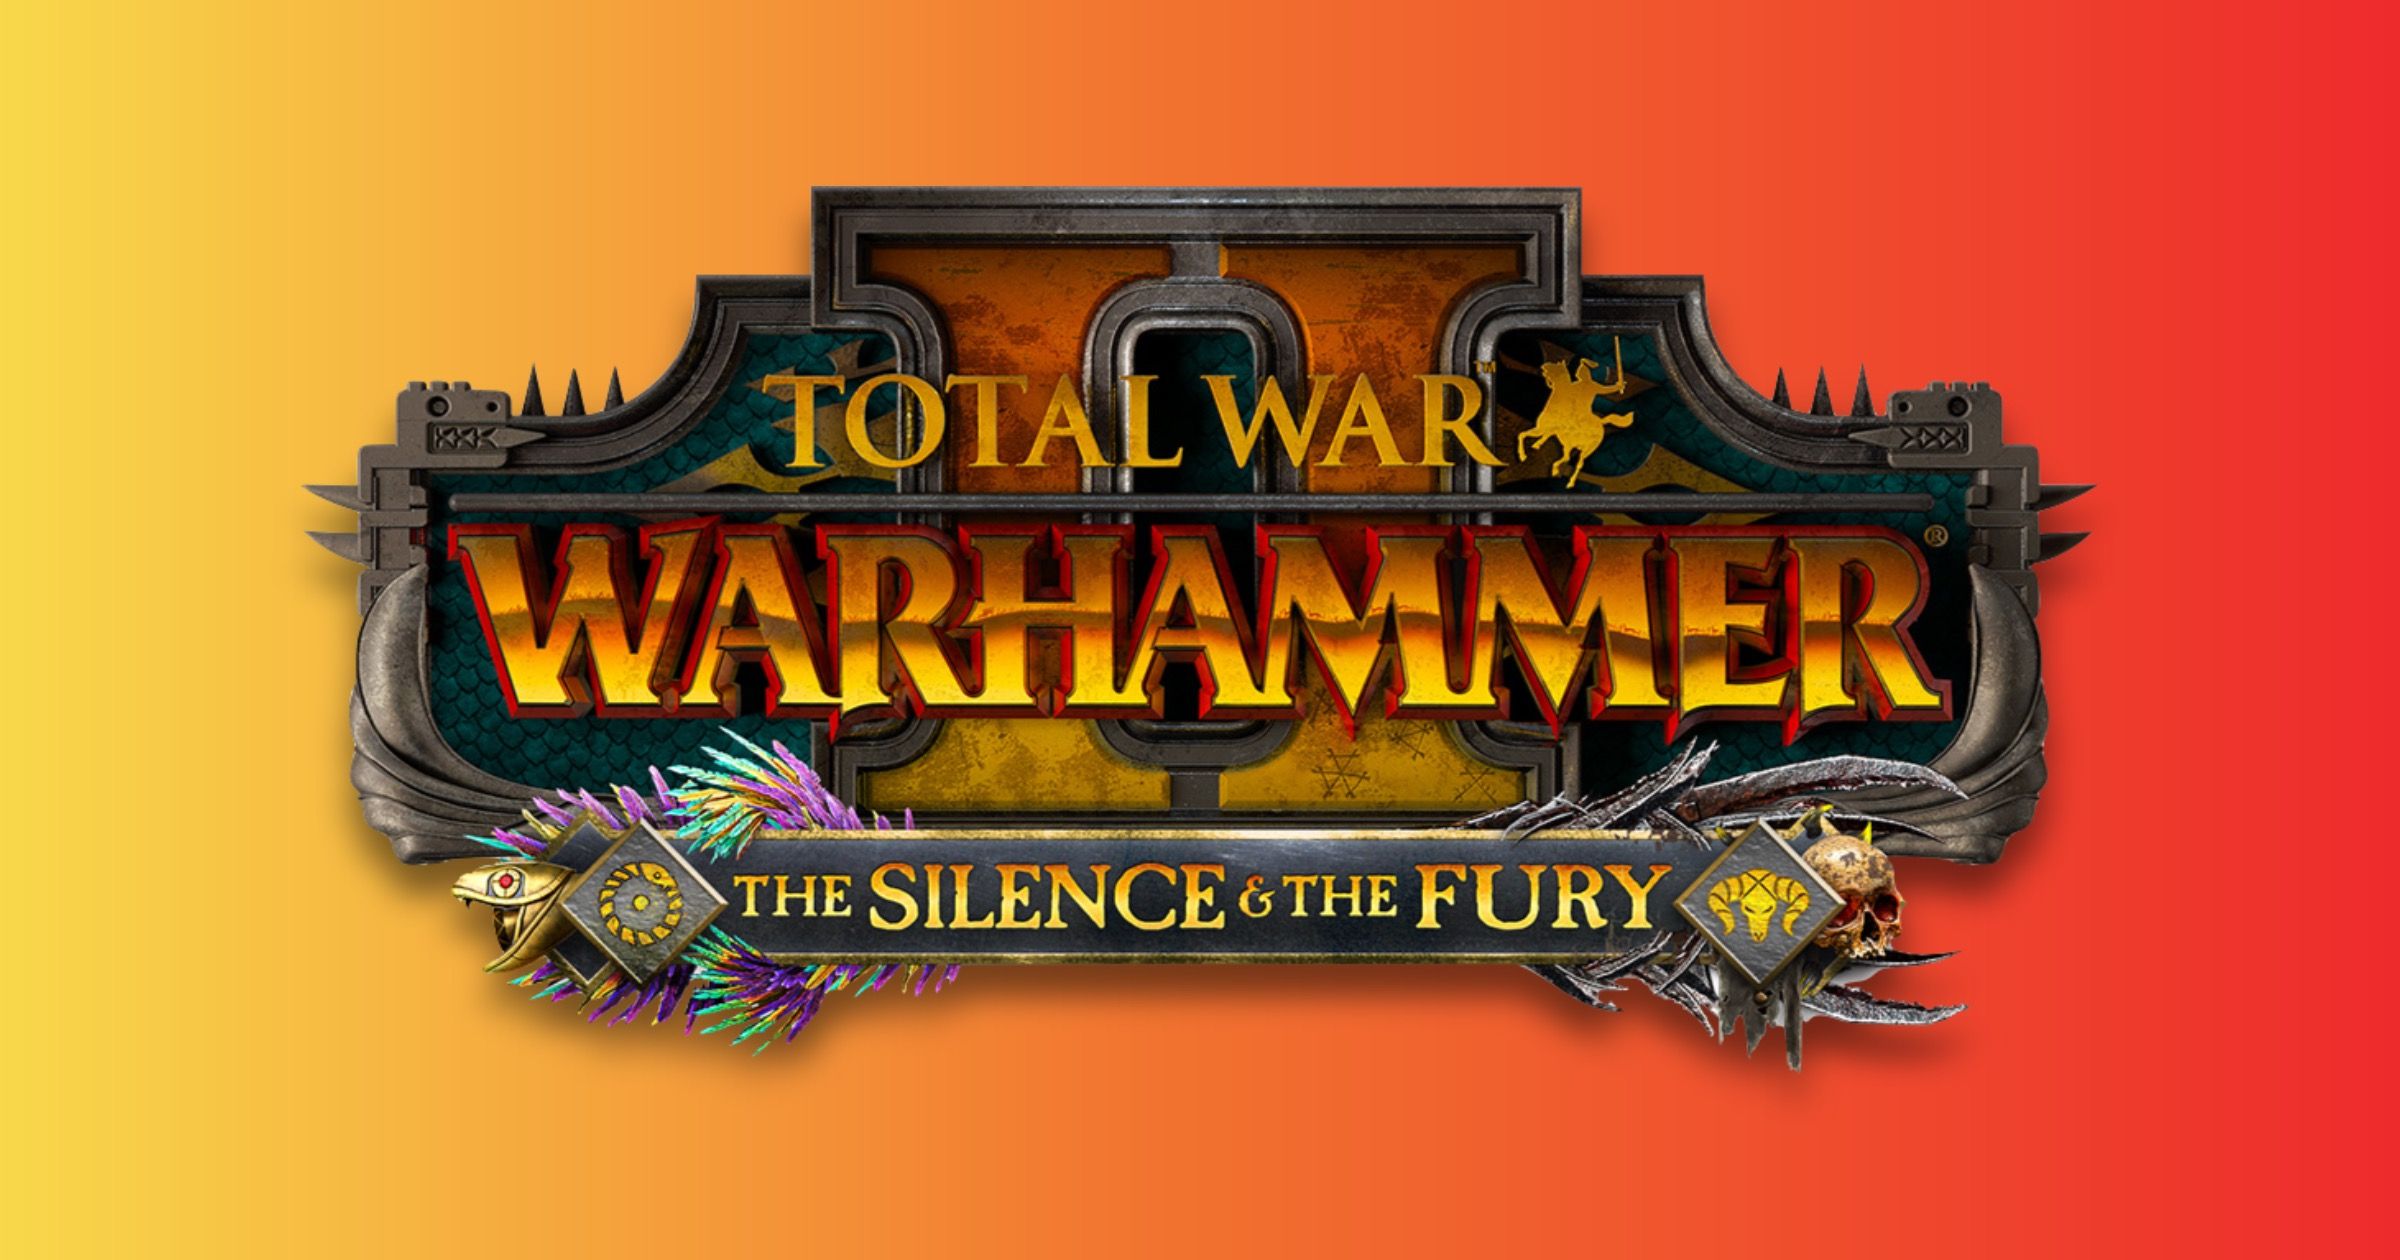 Total War: WARHAMMER II – The Silence & The Fury Available for Mac